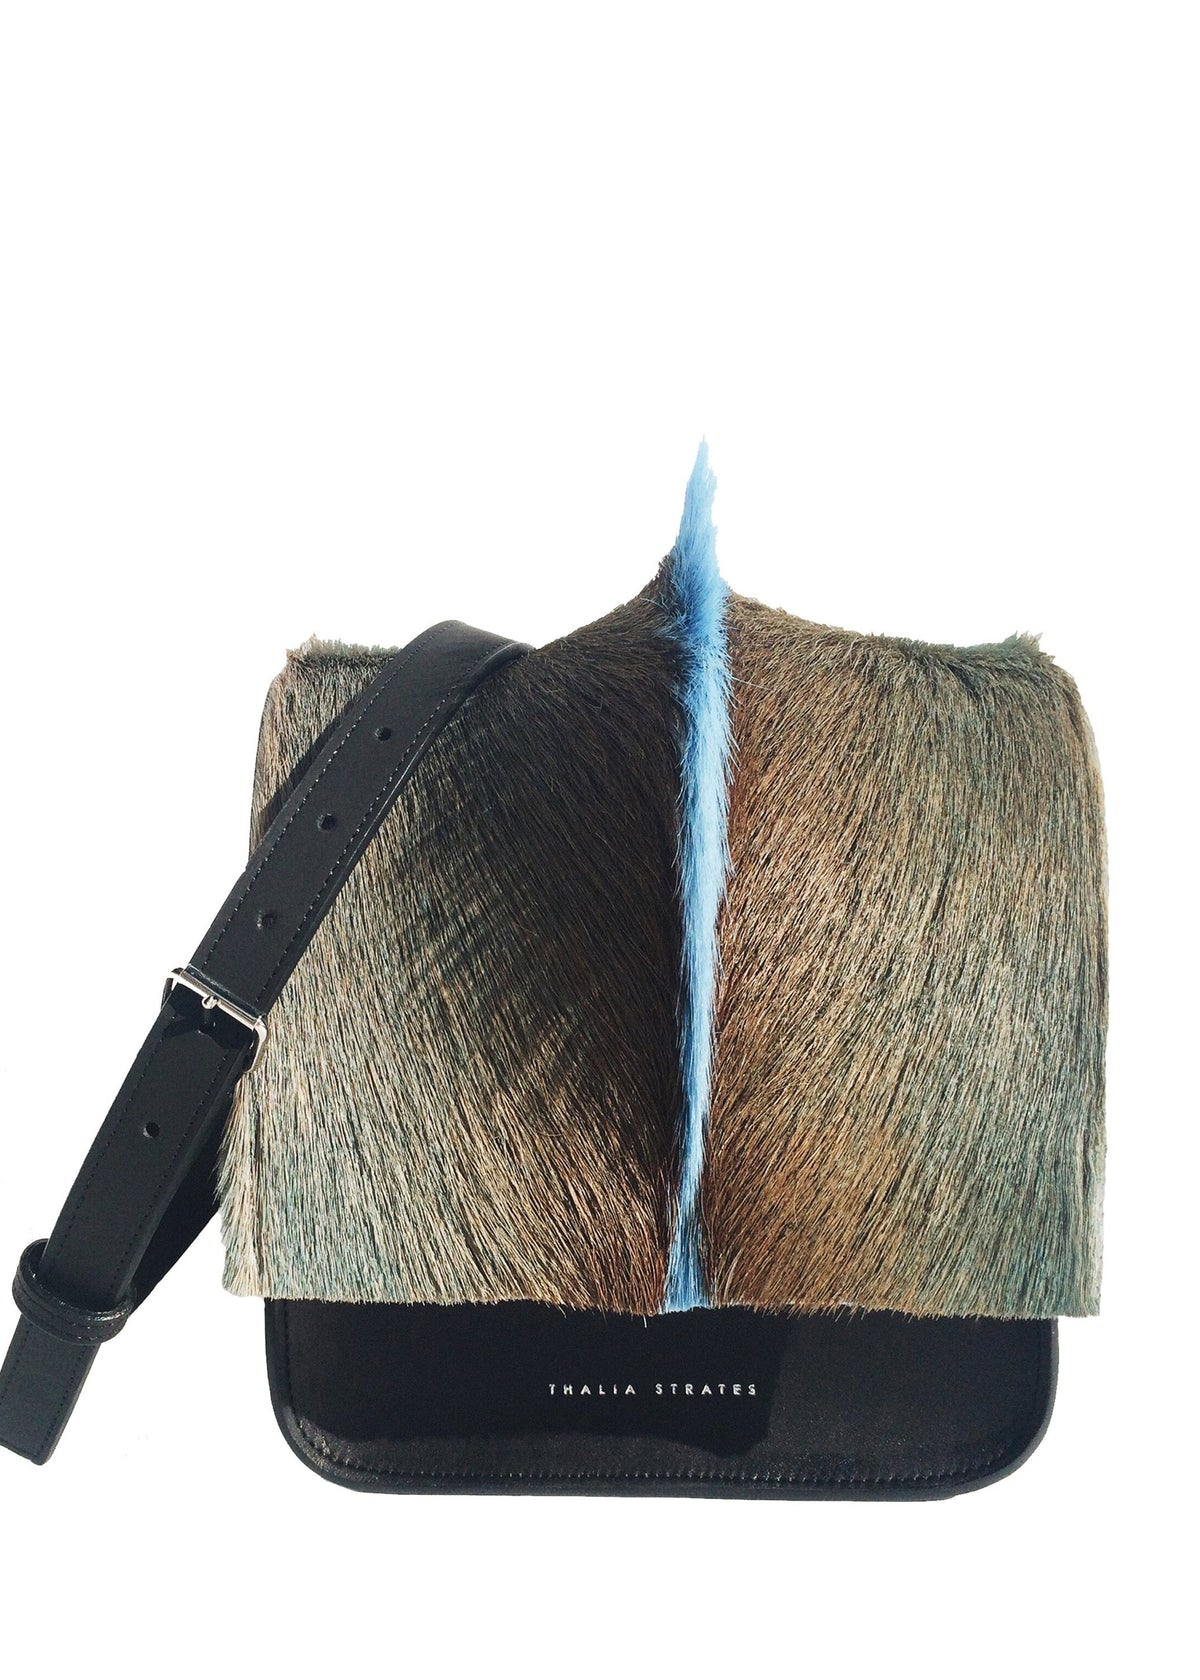 Shop the handmade springbok fur ombre bag from Thalia Strates.